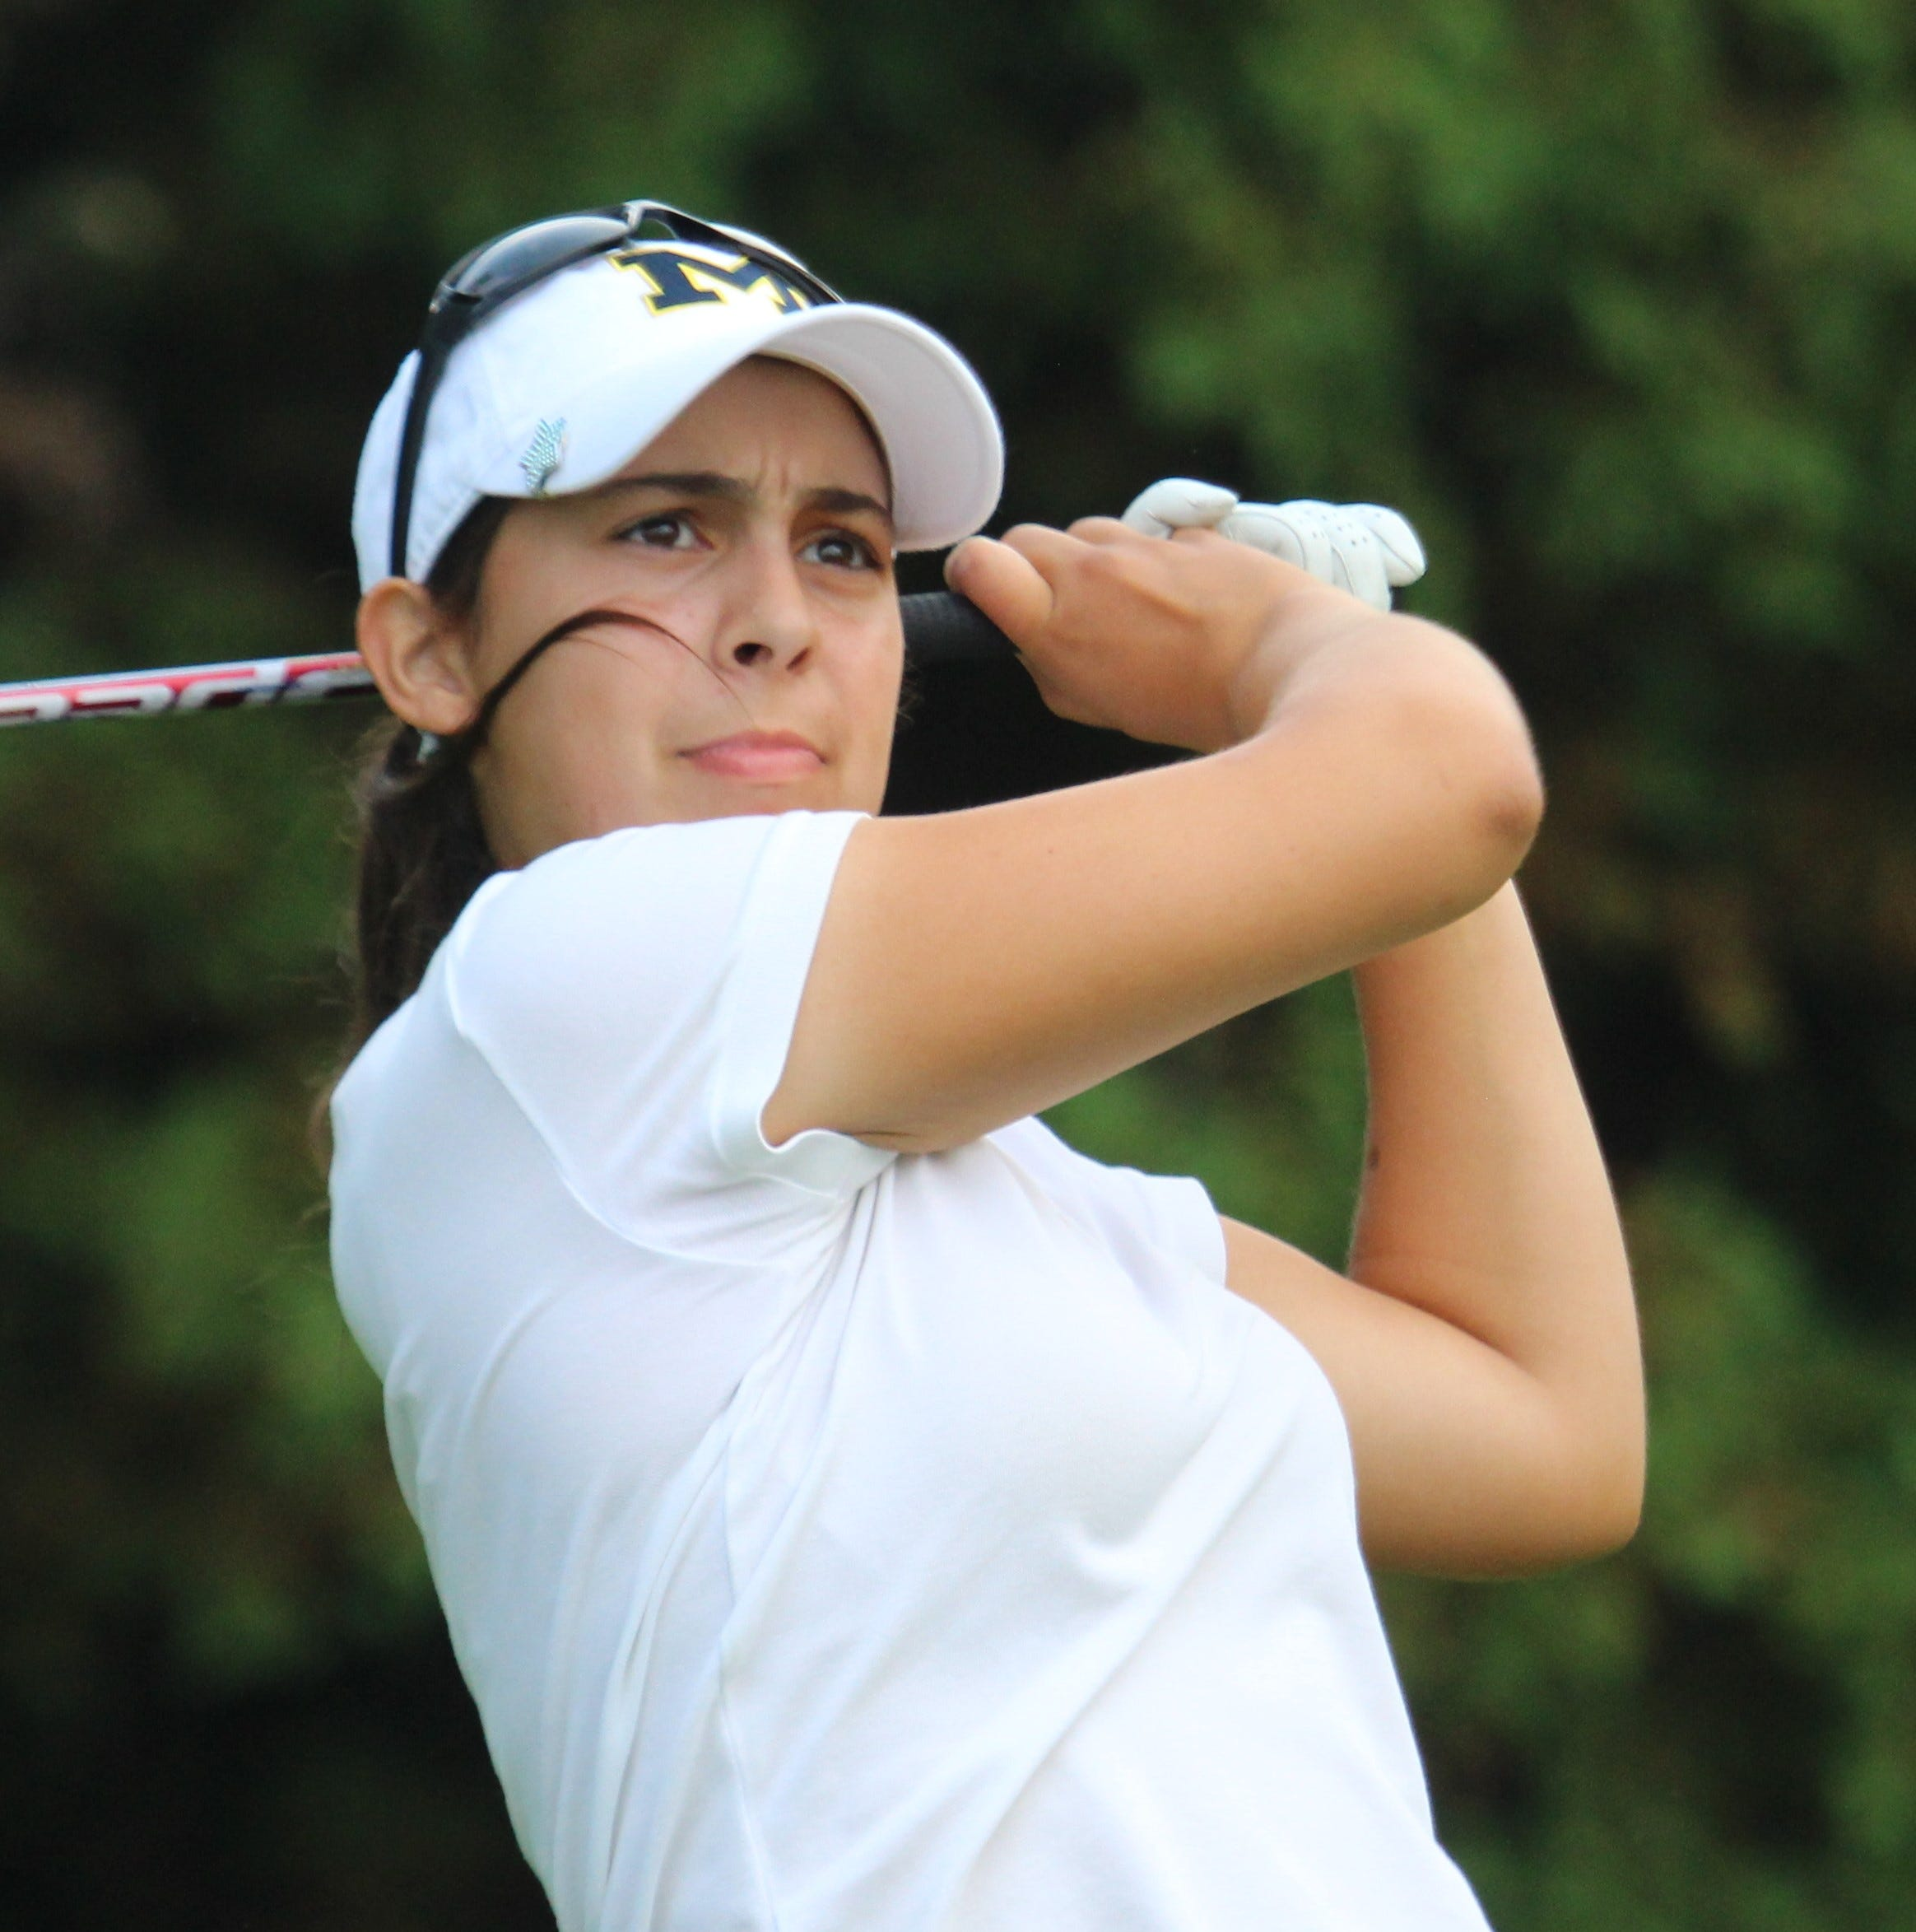 U-M commit Schulz driving for a big golf season in her final year